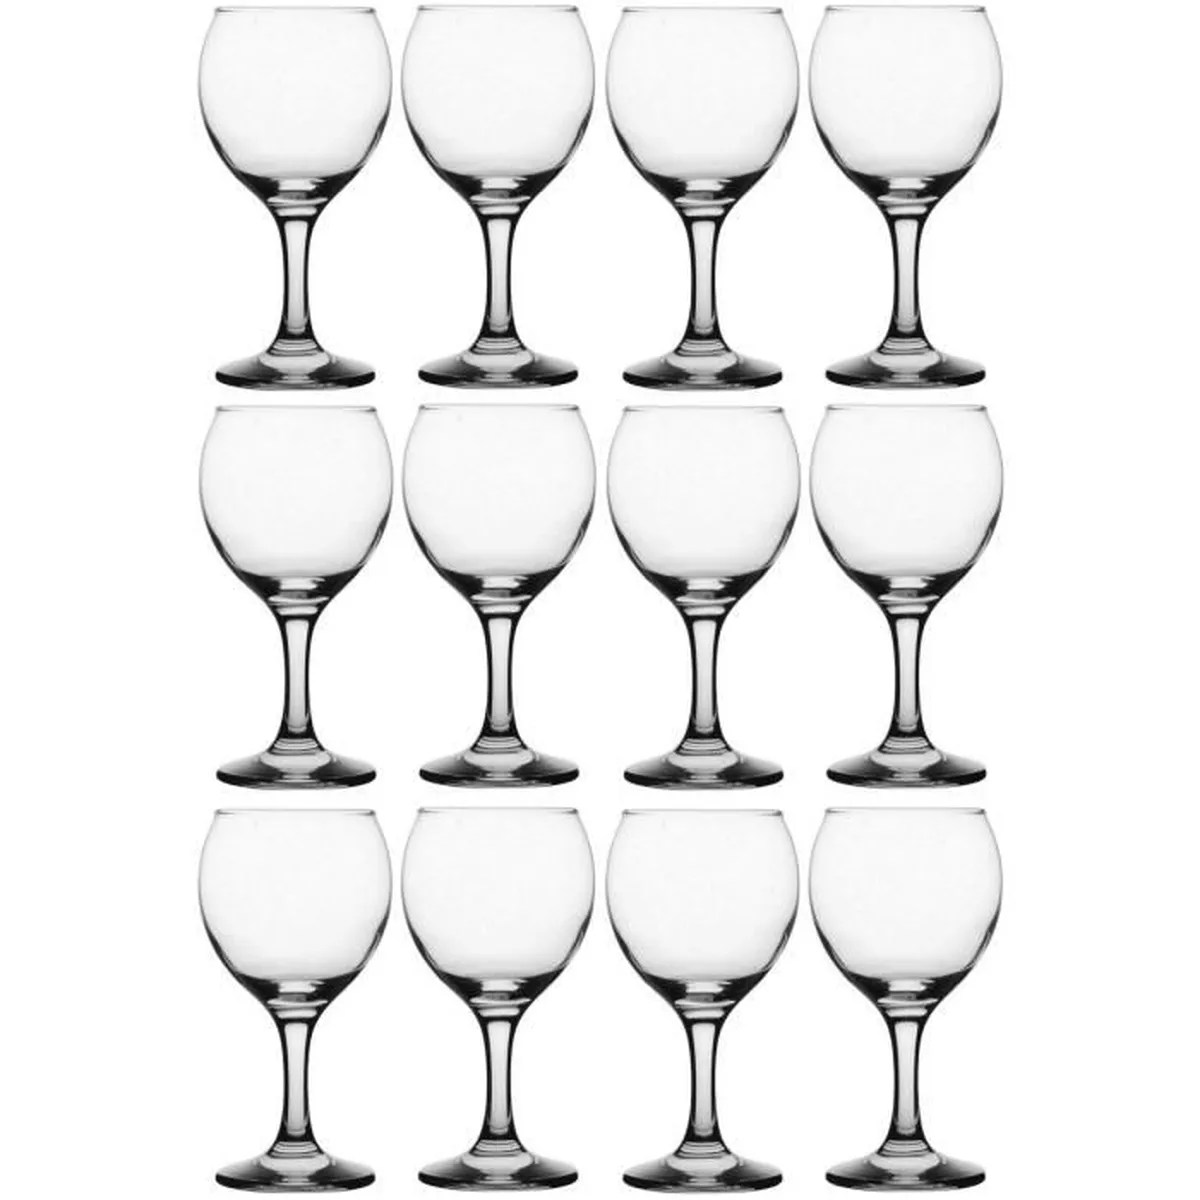 Photo De Verre De Vin Set Lot 12 Verre à Vin Ballon Sculpté 19 5cl Contenance Ideal